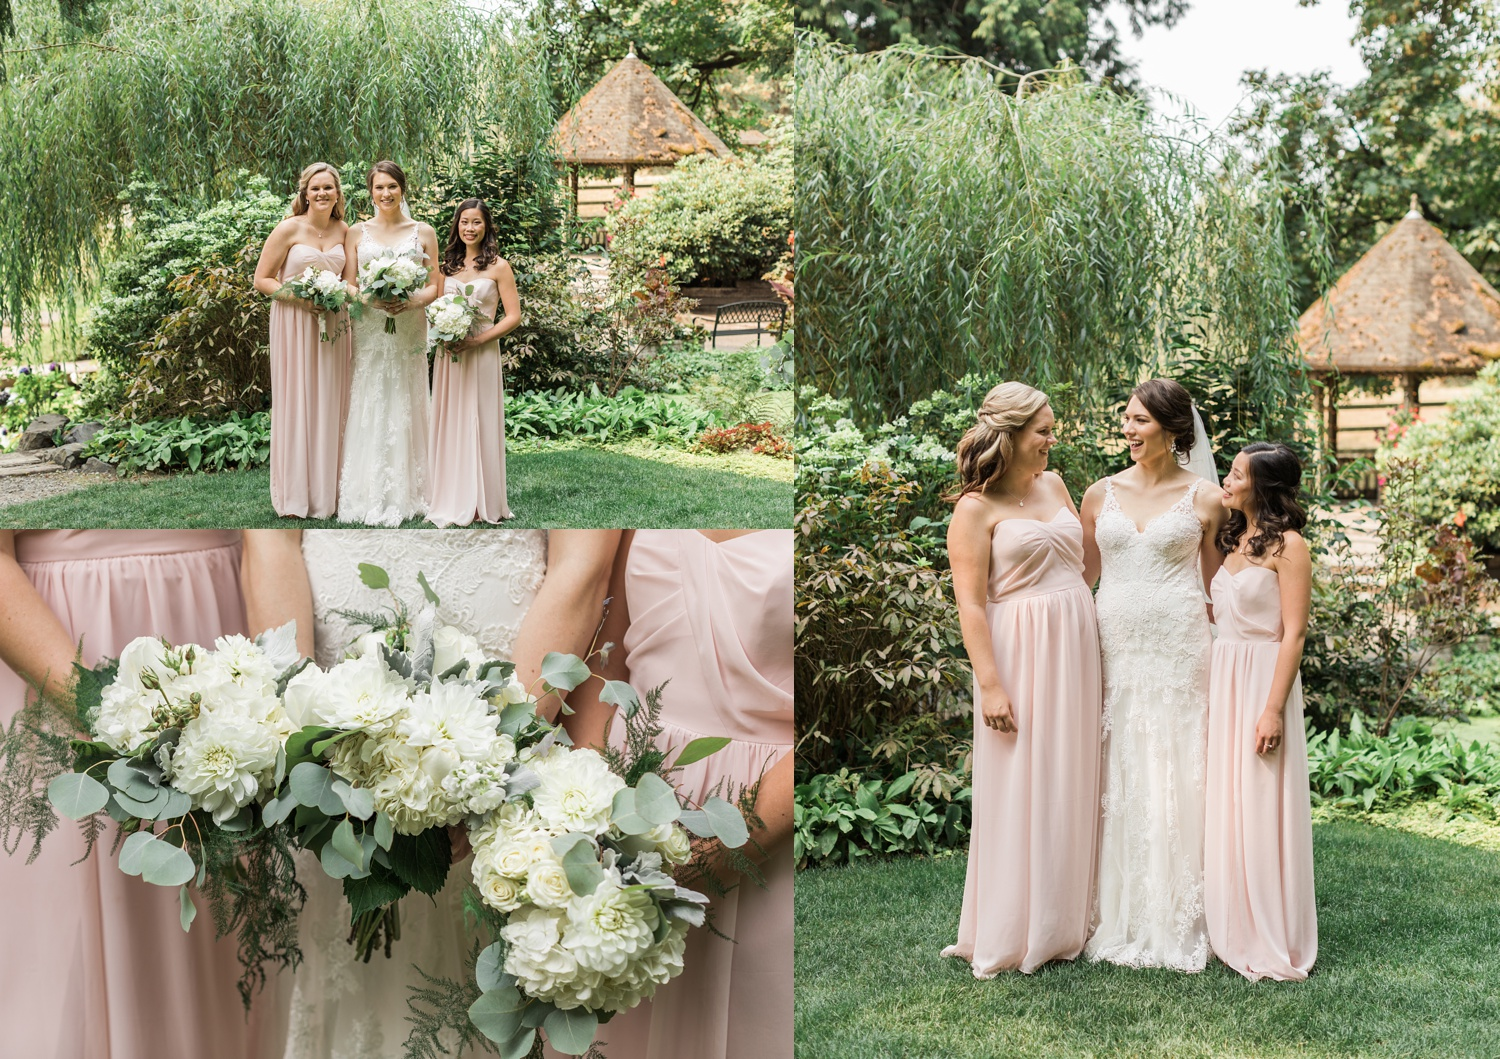 A photo of a bride and her bridal party before her wedding at Chateau Lill in Woodinville, a wedding venue near Seattle, WA.   Joanna Monger Photography   Seattle & Snohomish Photographer